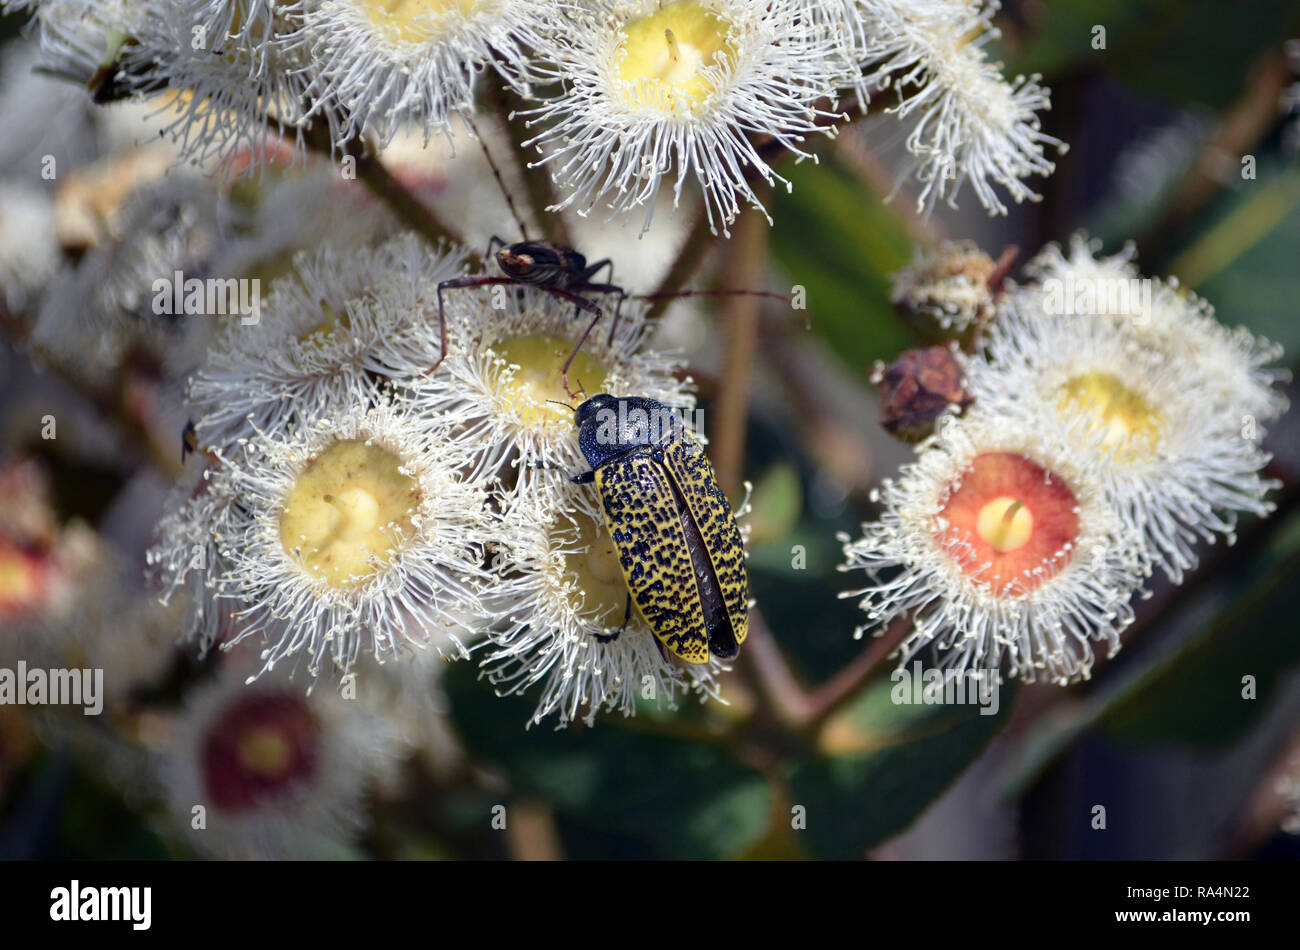 Australian native Freckled Jewel Beetle, Stigmodera macularia, feeding on nectar of Angophora hispida blossoms, Royal National Park, NSW, Australia - Stock Image